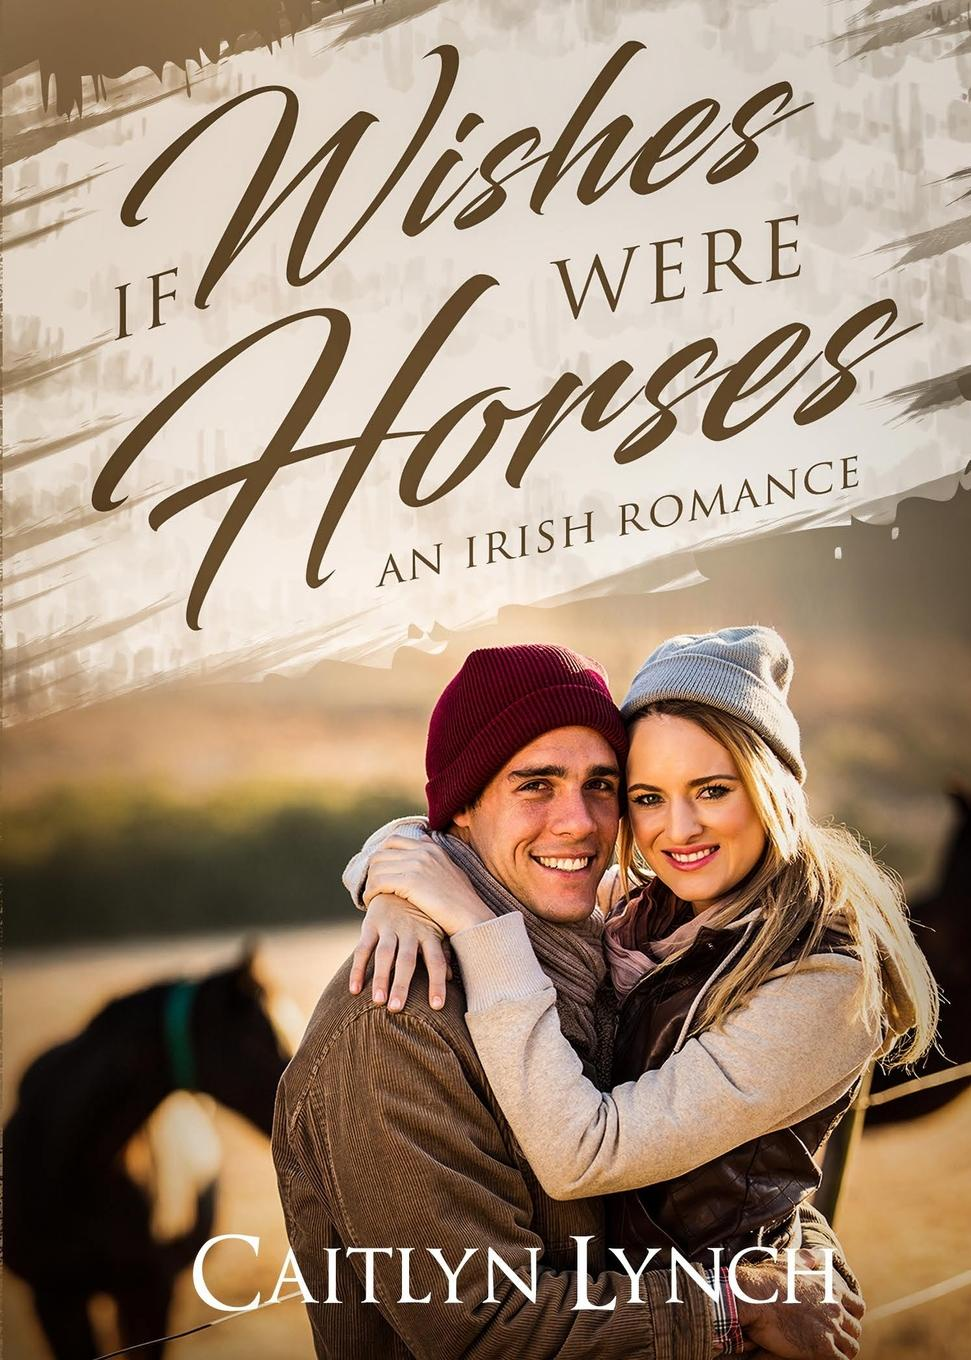 Caitlyn Lynch If Wishes Were Horses. An Irish Romance carolyn mcsparren if wishes were horses